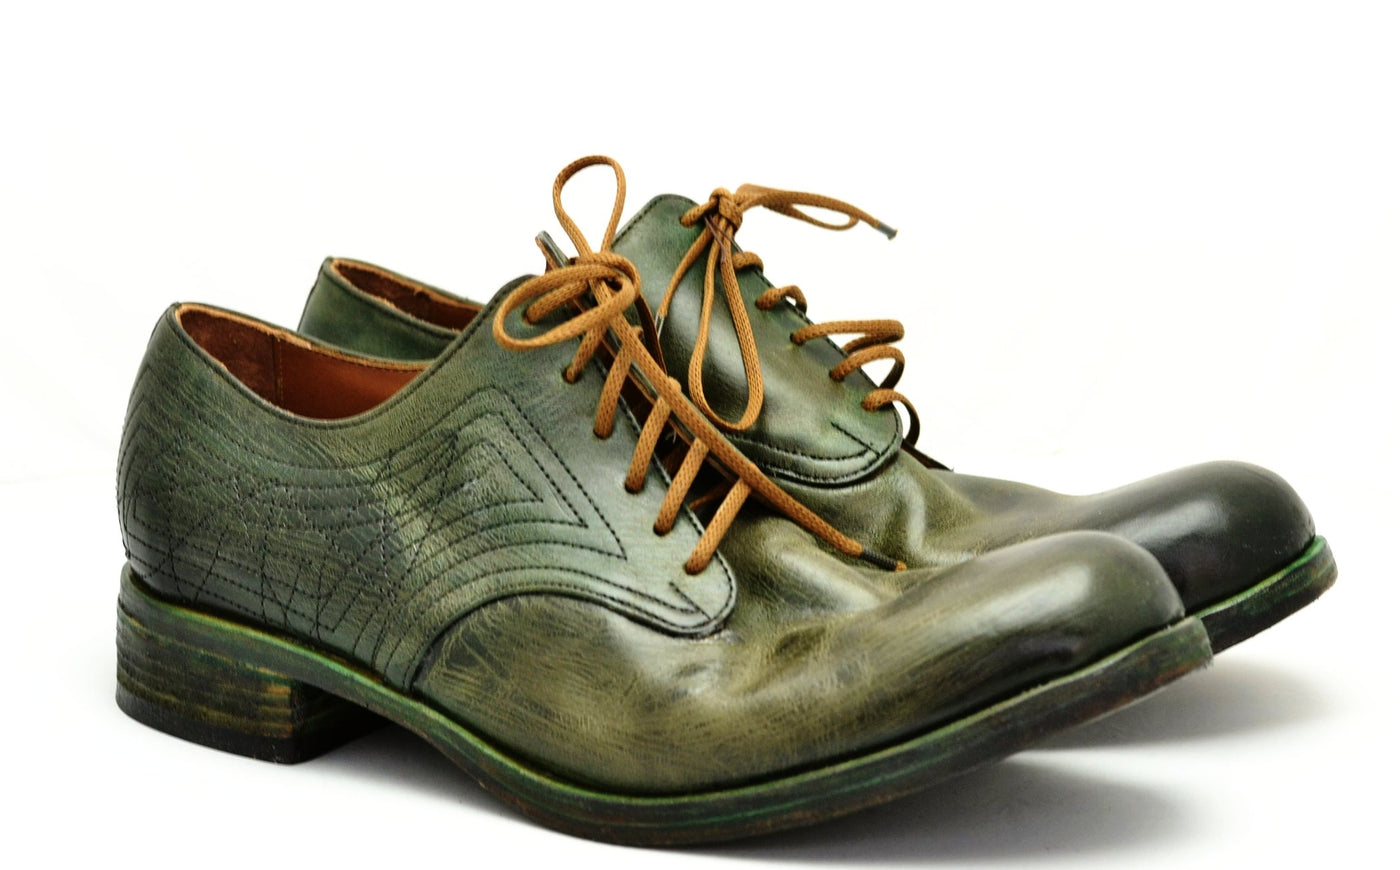 880764b475f21 A. McDonald Shoemaker high quality shoes and boots for men and women